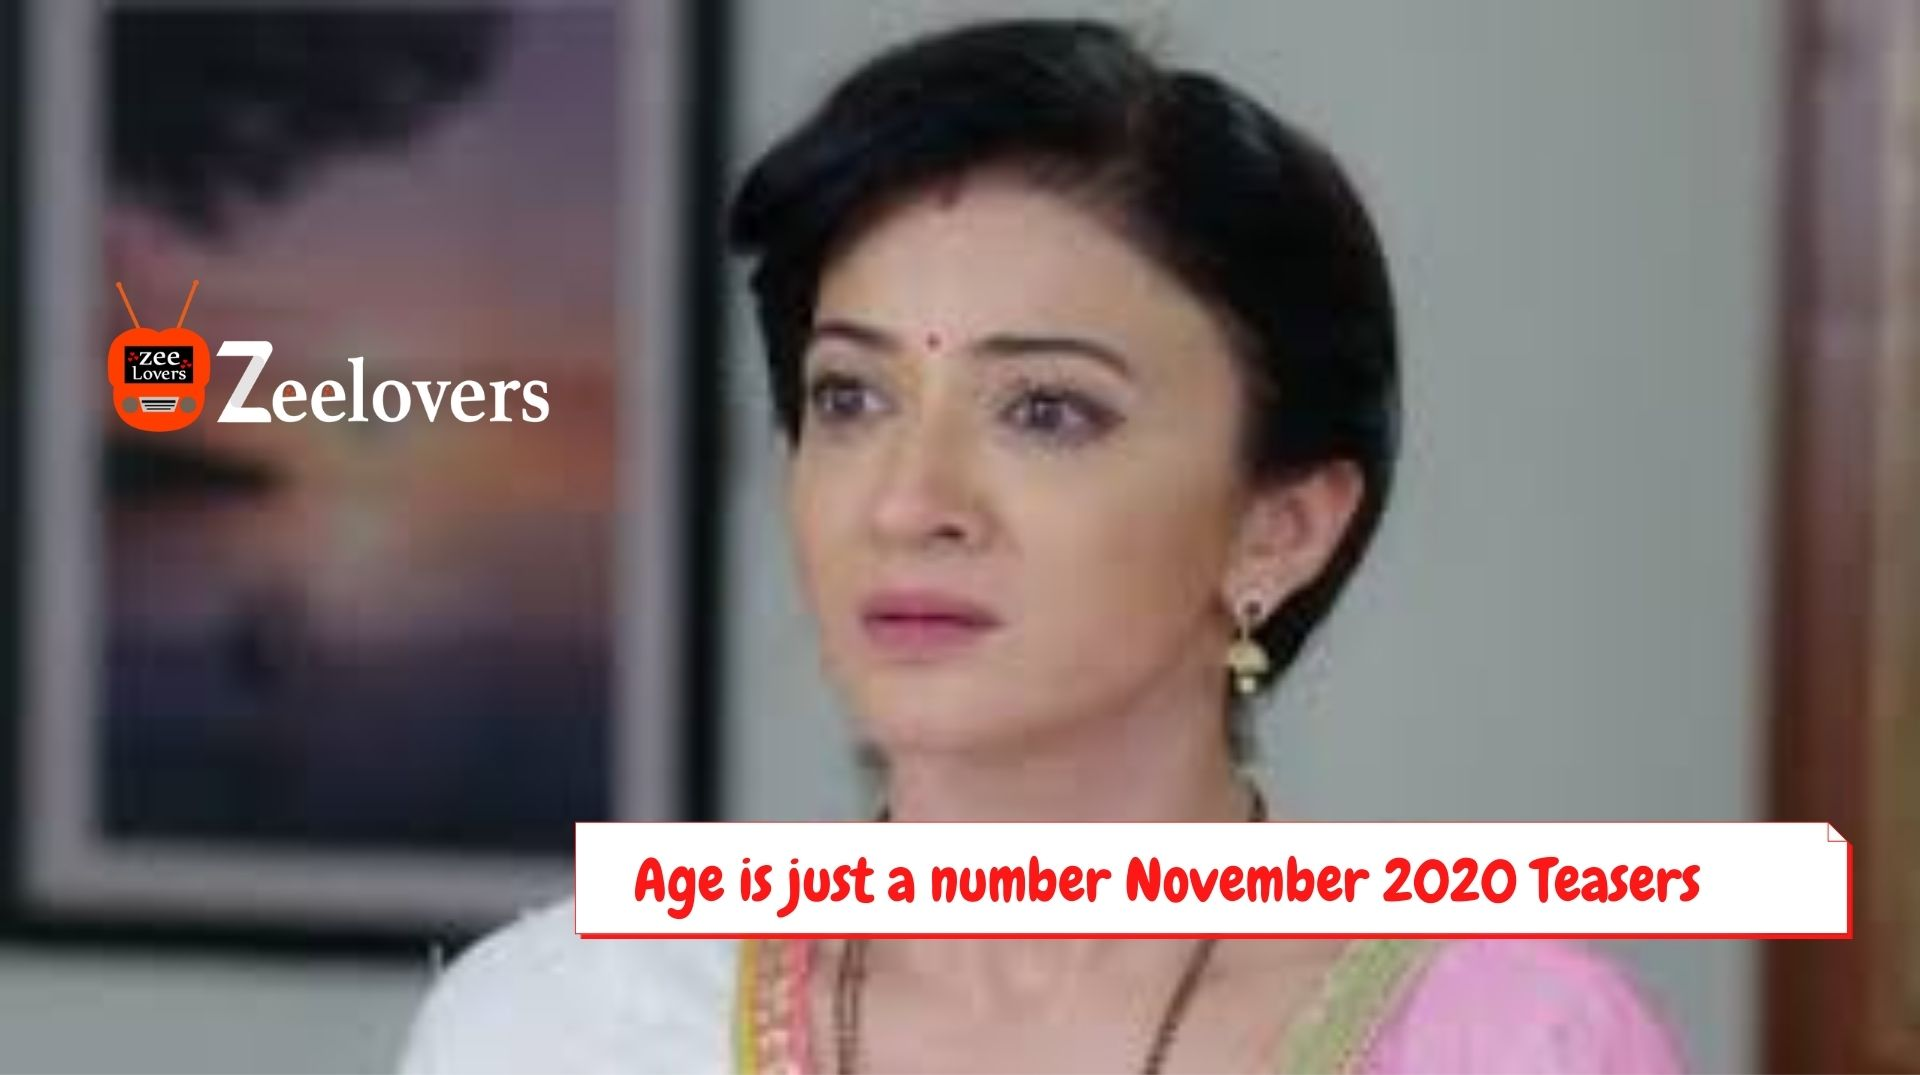 Age is just a number November 2020 Teasers